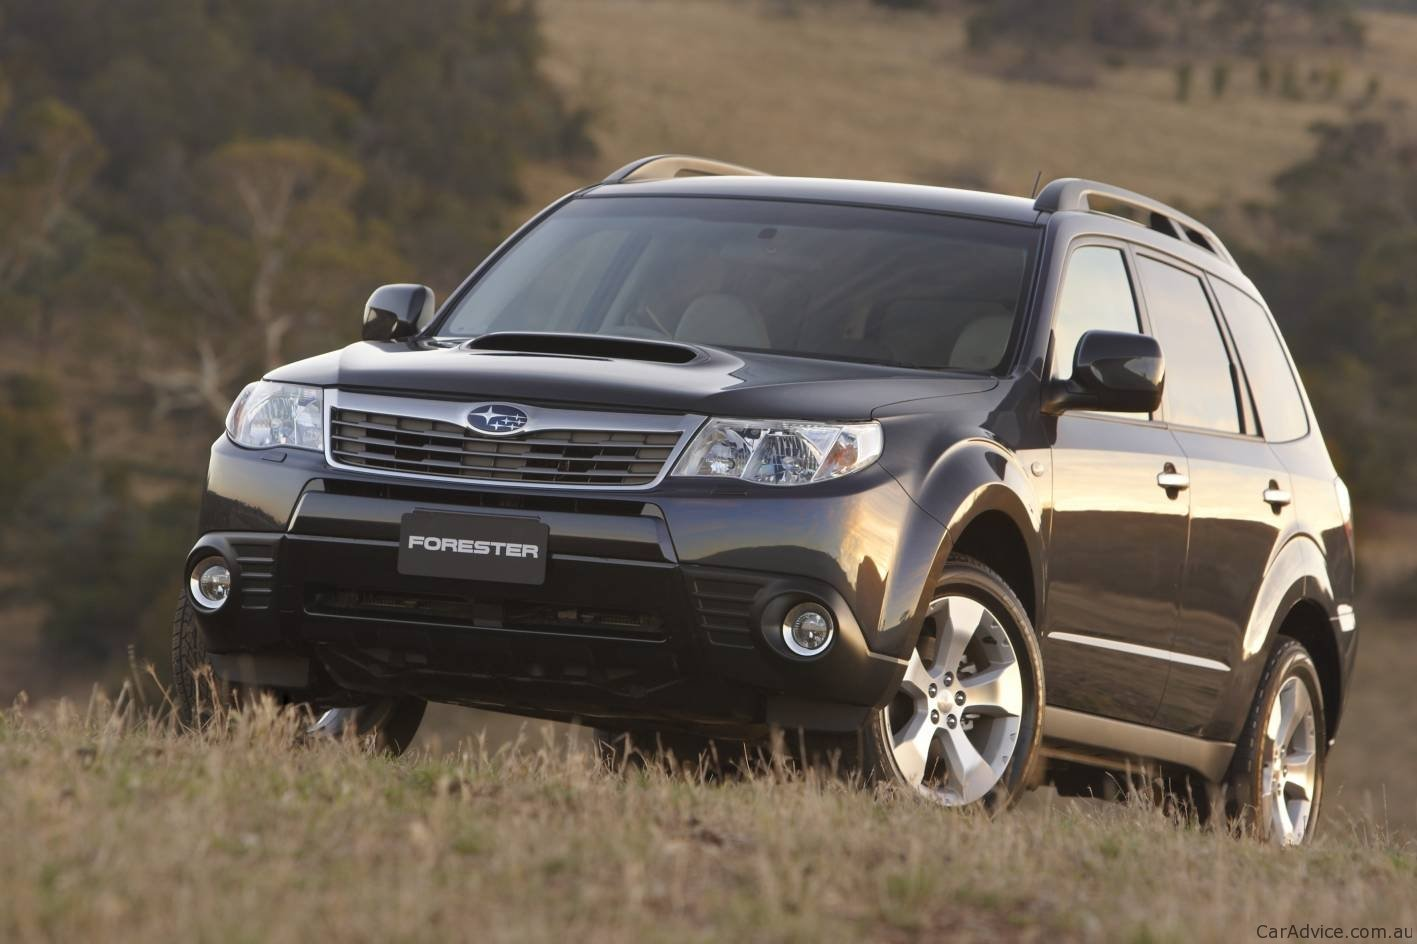 Subaru Forester vs Toyota RAV4 vs Nissan X-Trail - Photos